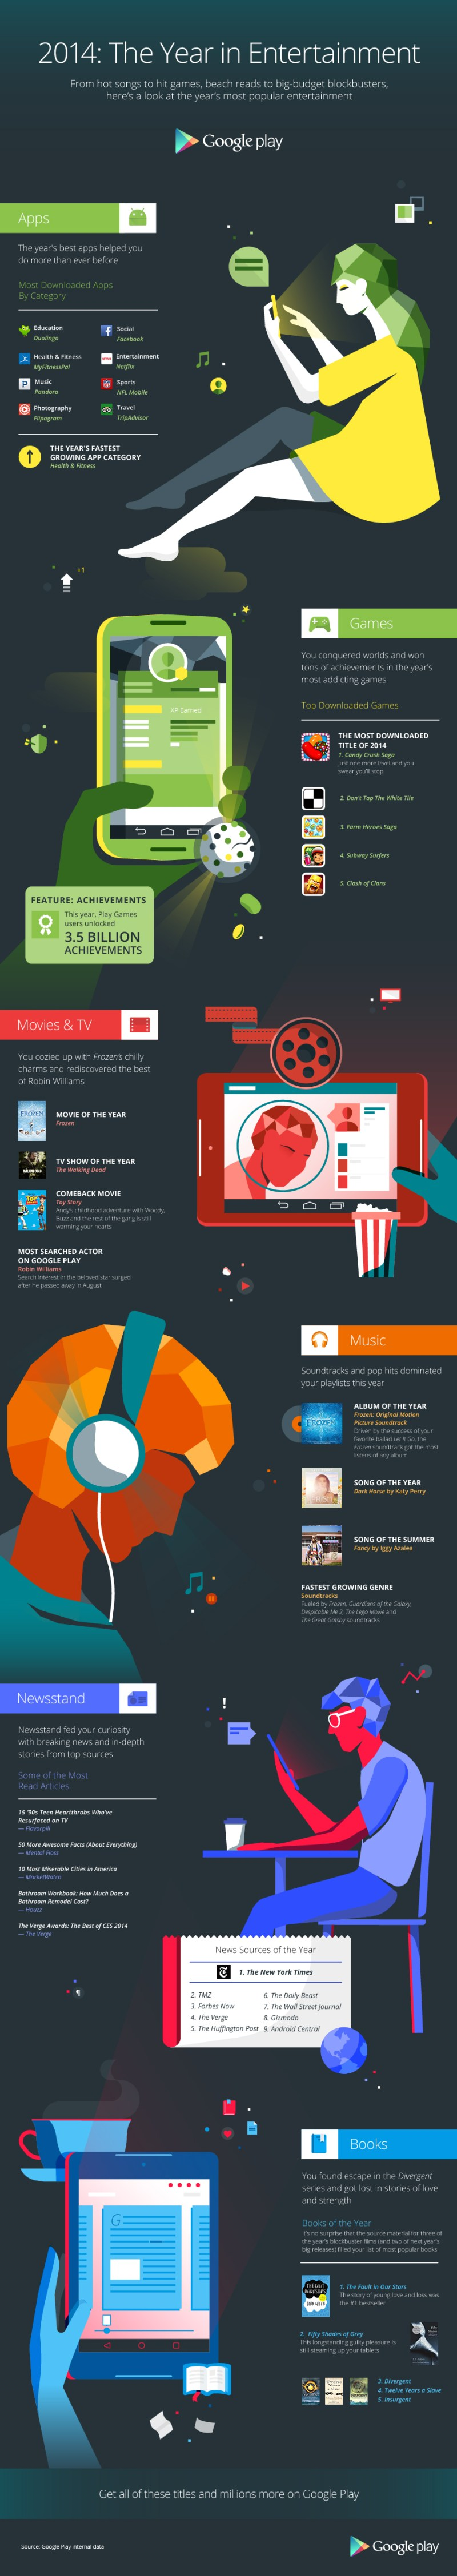 Google Play - End of Year Infographic - 2014 - FINAL (1)